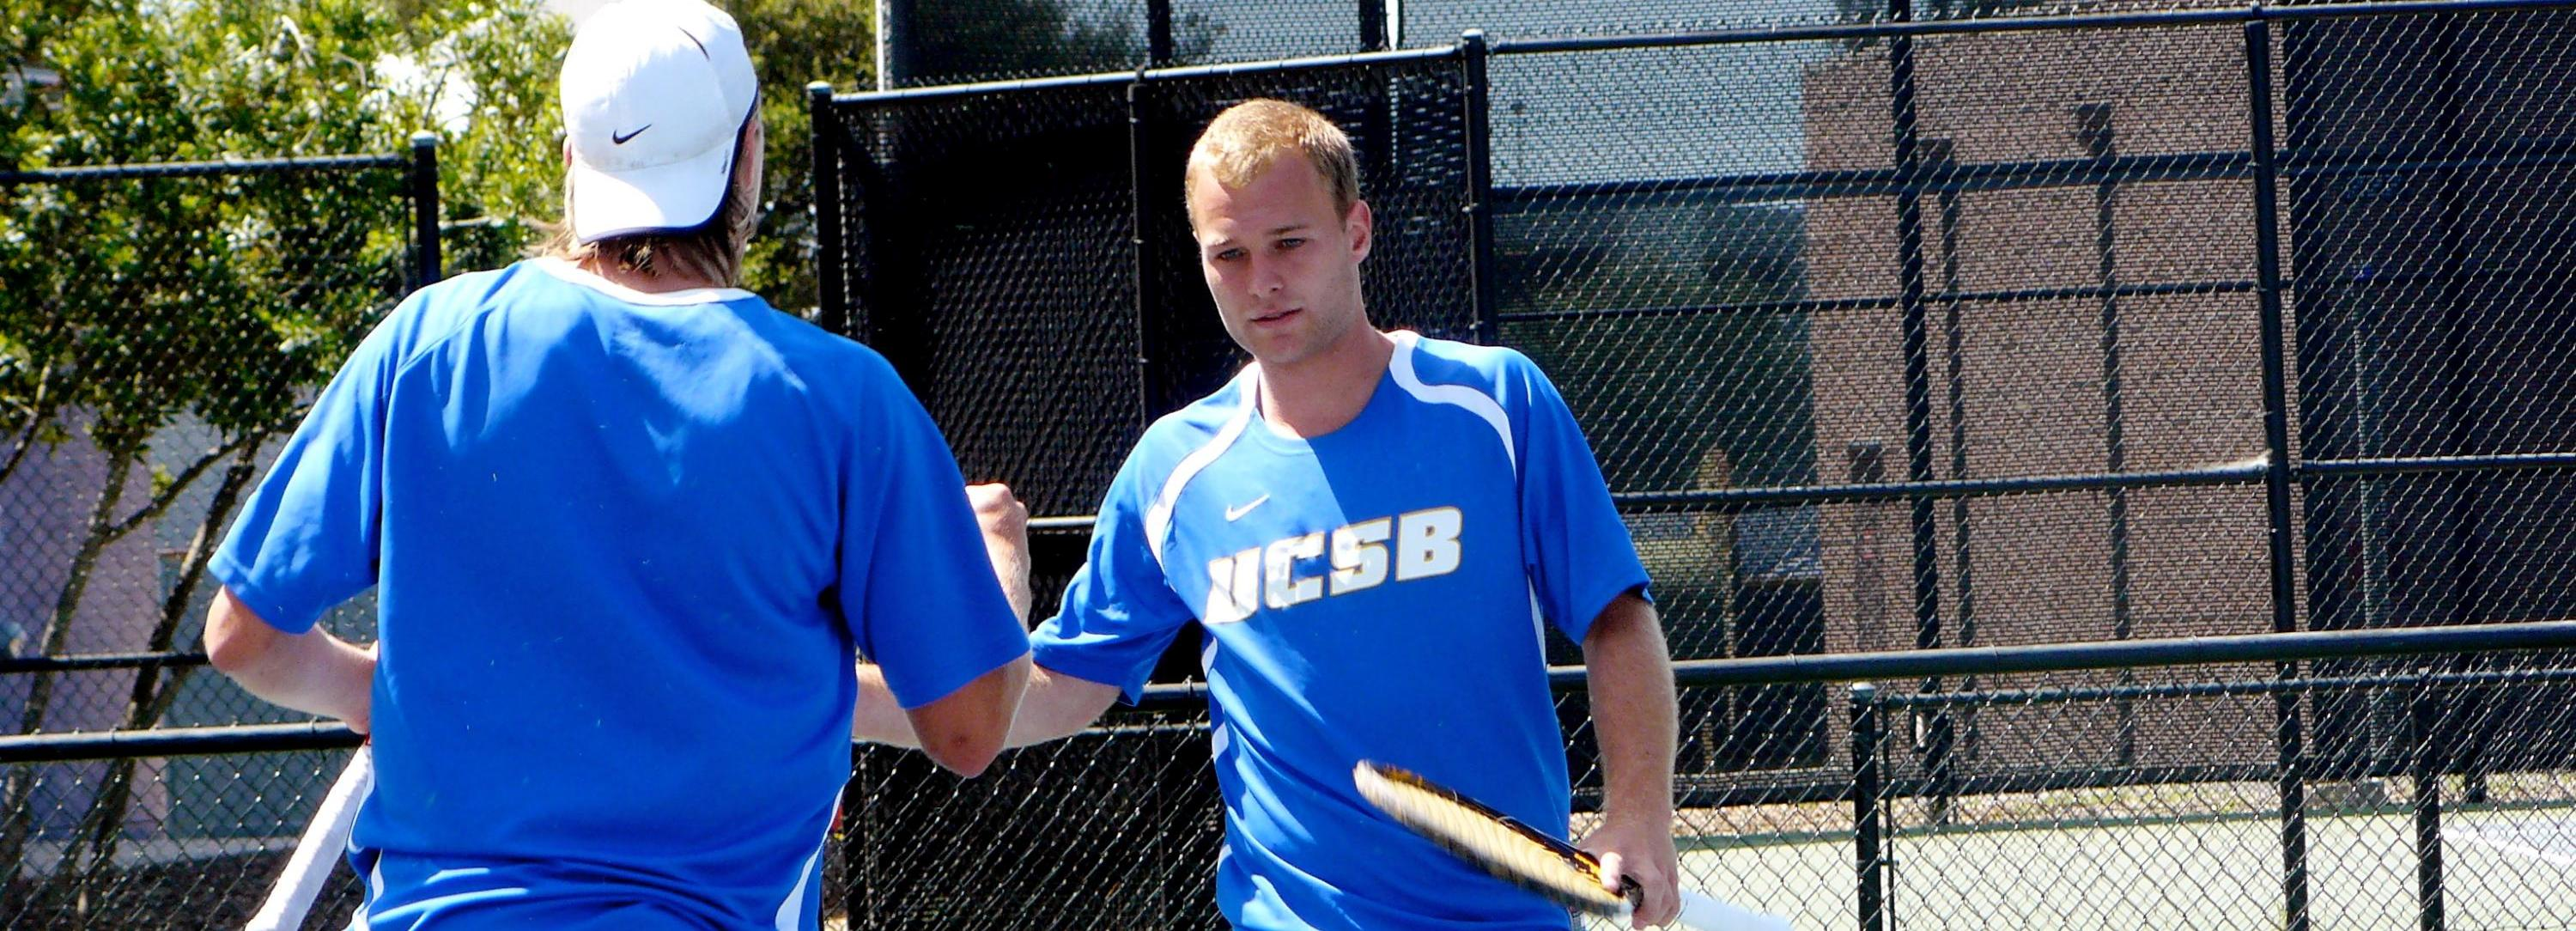 UCSB Men's Tennis Recruiting Class Ranked 24th Nationally, First Among Mid-Majors